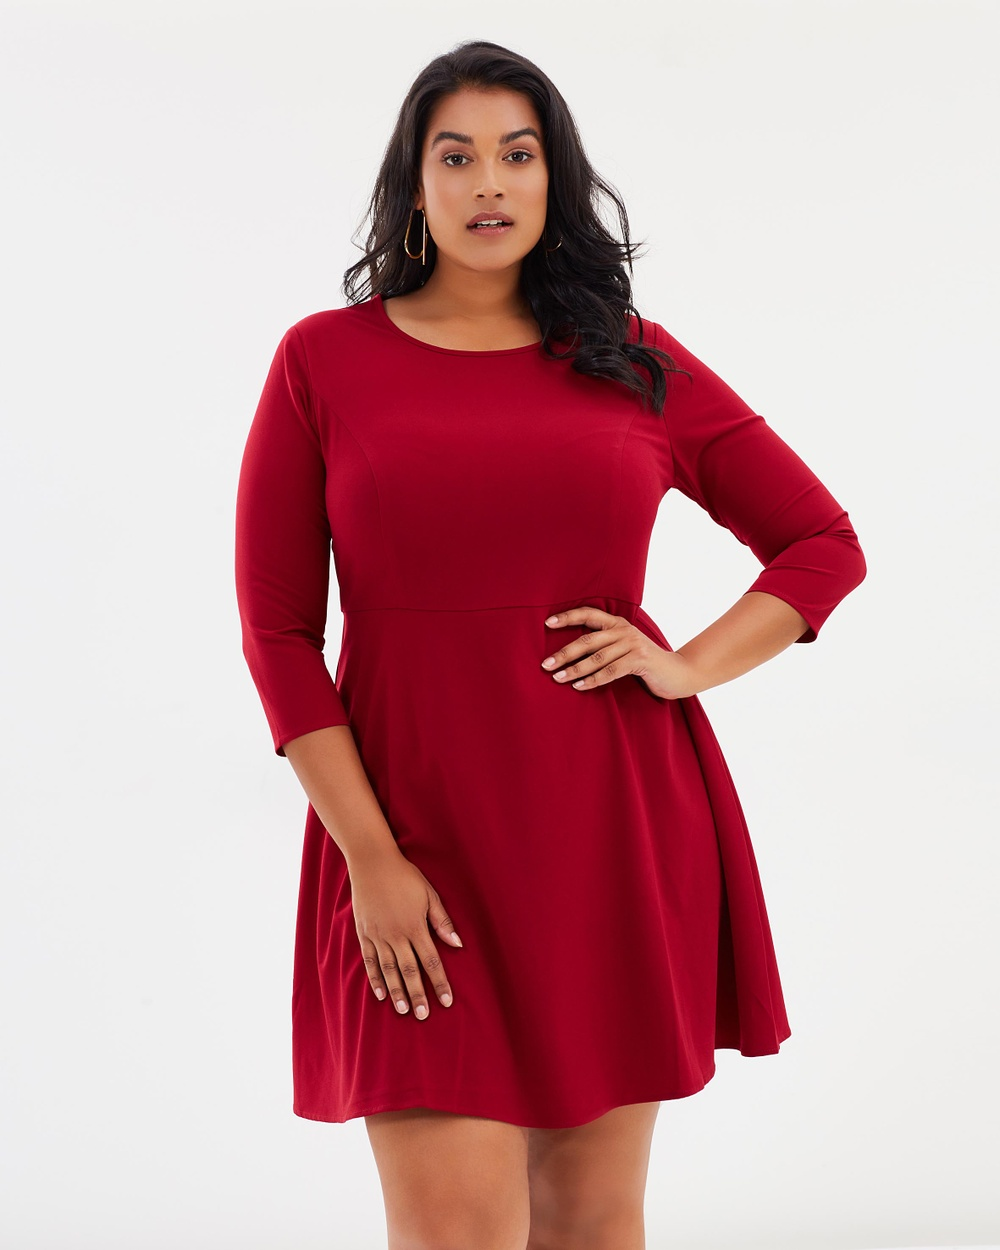 Atmos & Here Curvy ICONIC EXCLUSIVE Michelle Fit And Flare Dress Dresses Burgundy ICONIC EXCLUSIVE Michelle Fit And Flare Dress